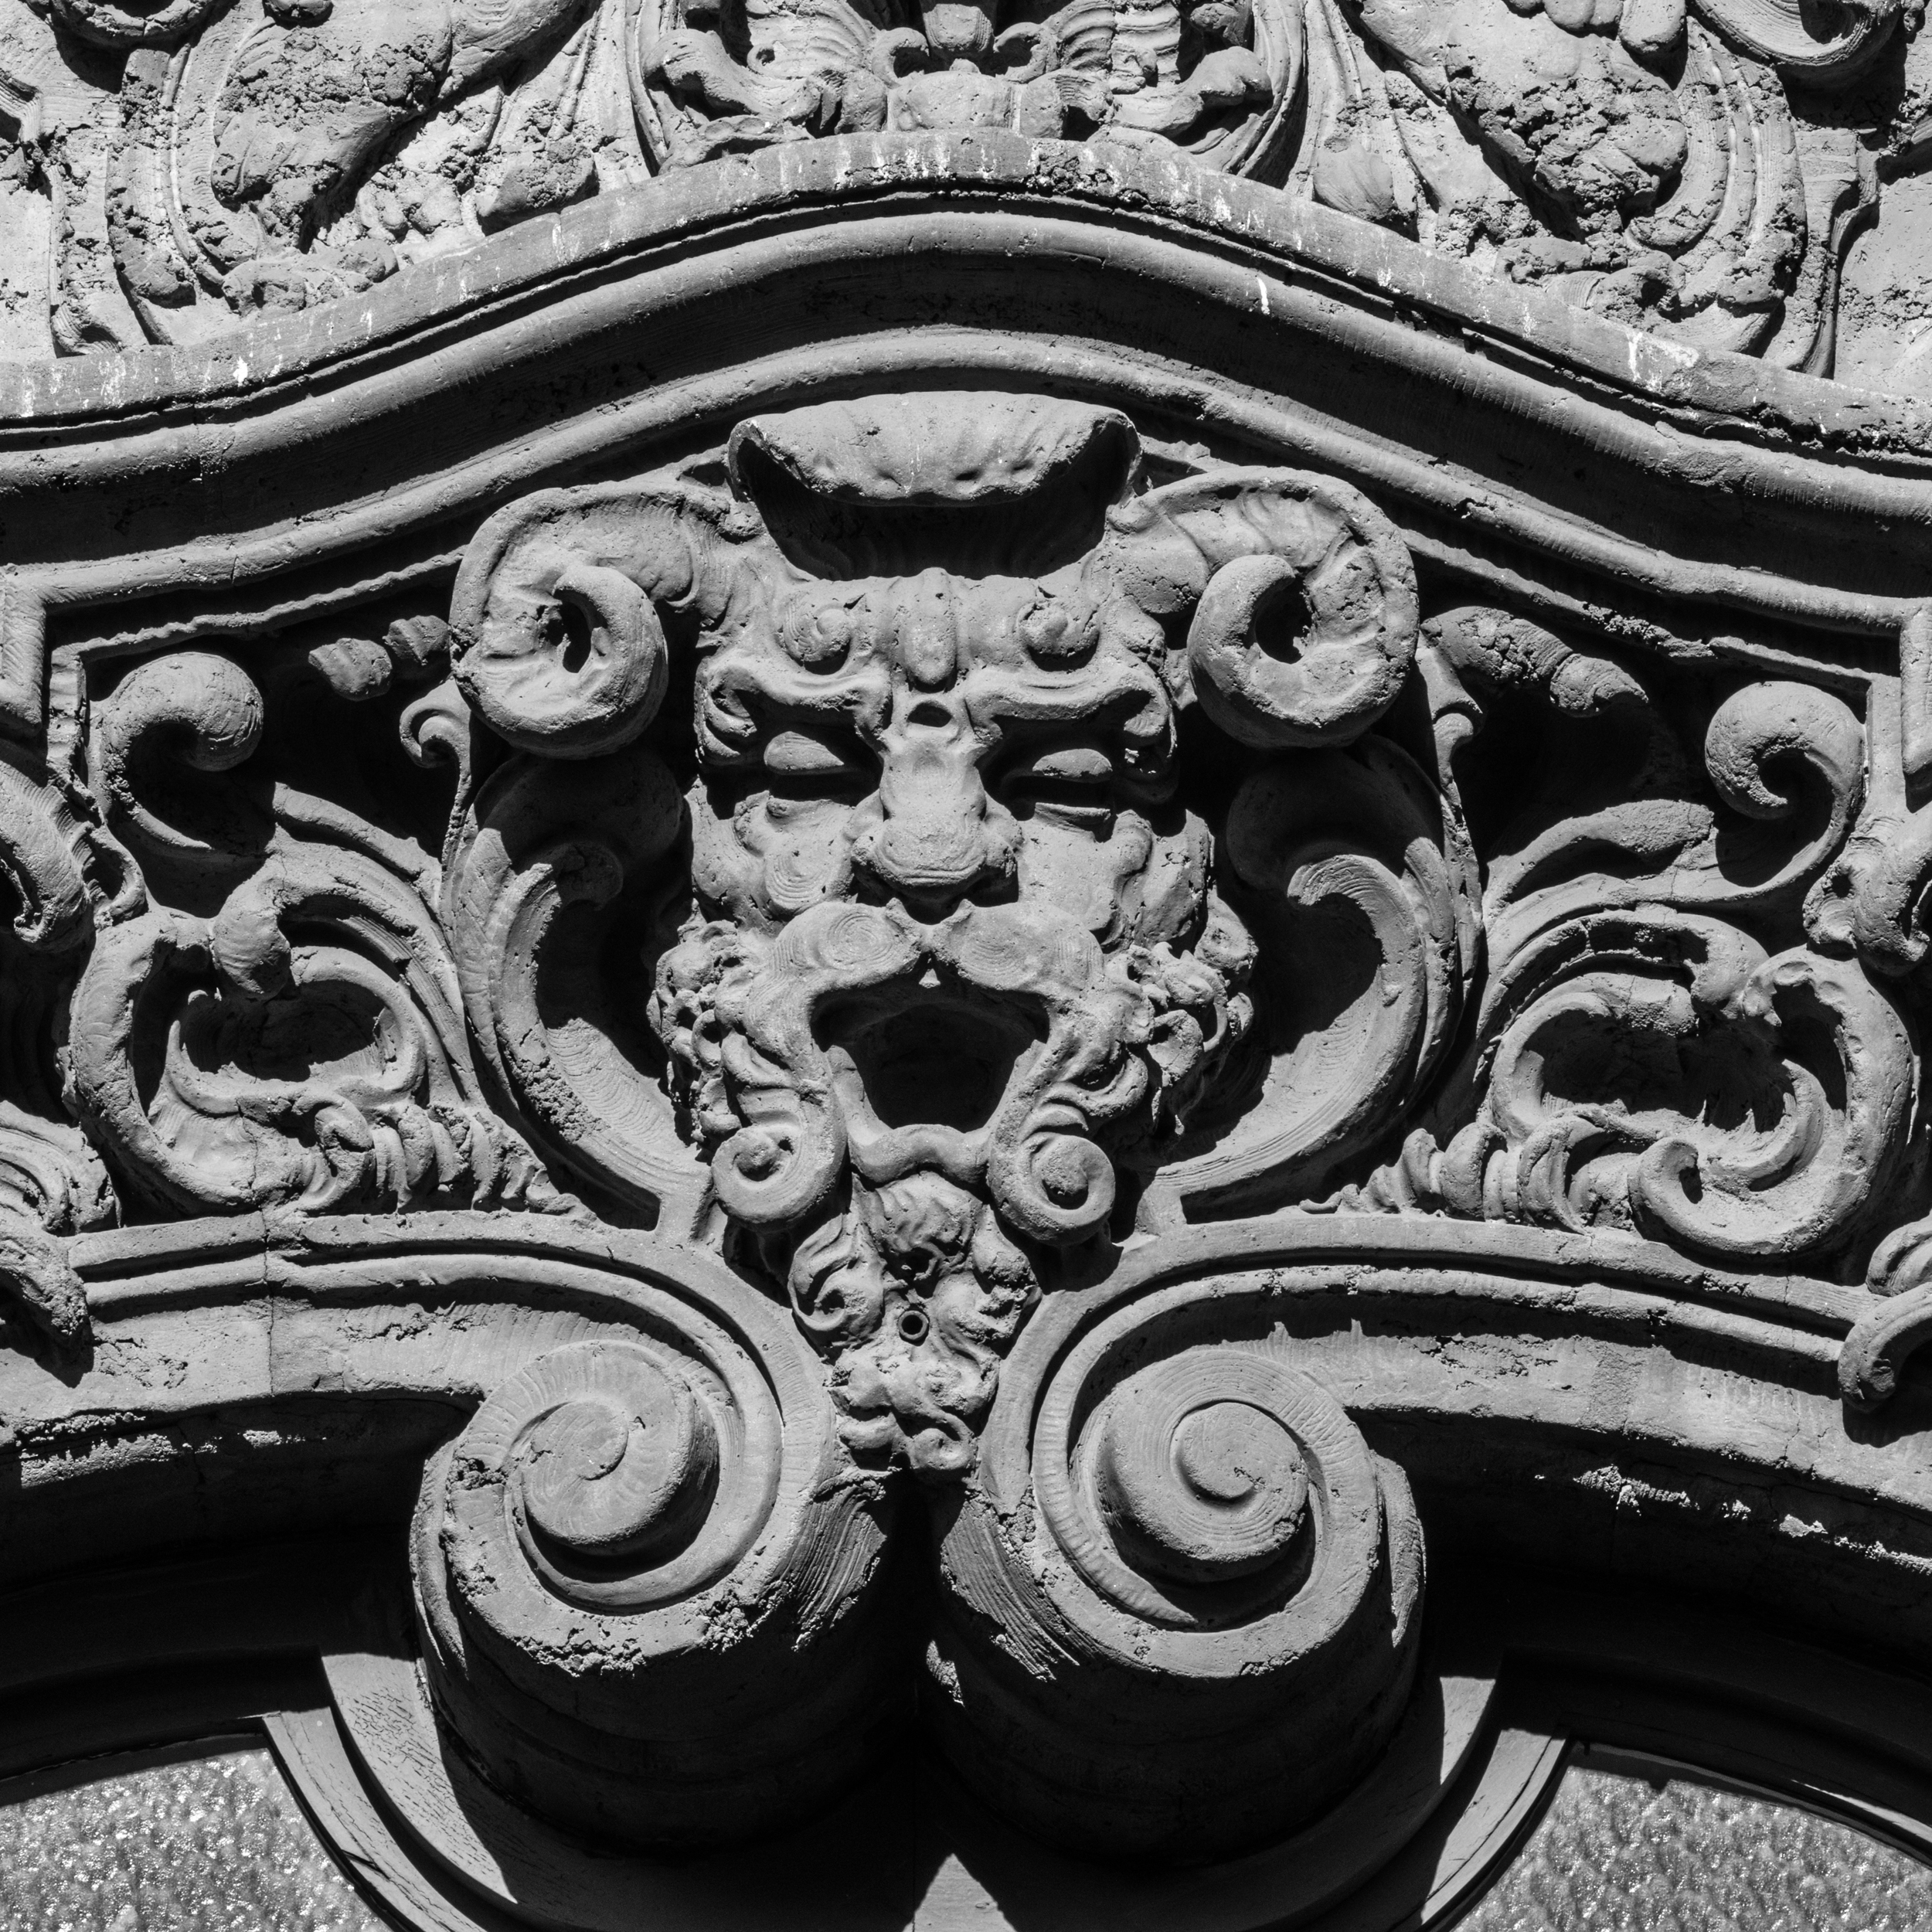 MILLION DOLLAR THEATER_DETAIL_2_004.jpg